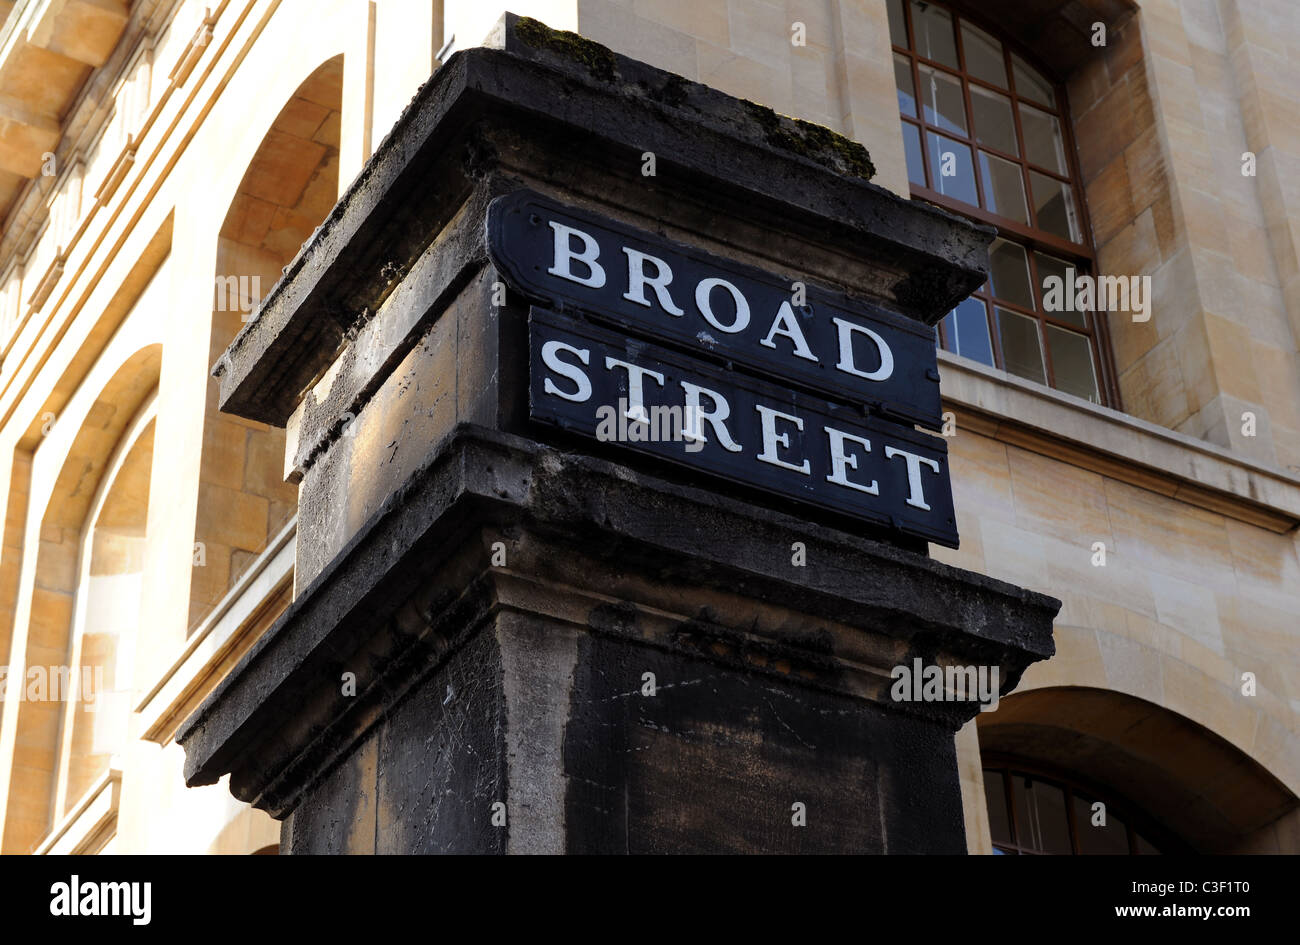 Broad Street, Oxford, road name sign - Stock Image